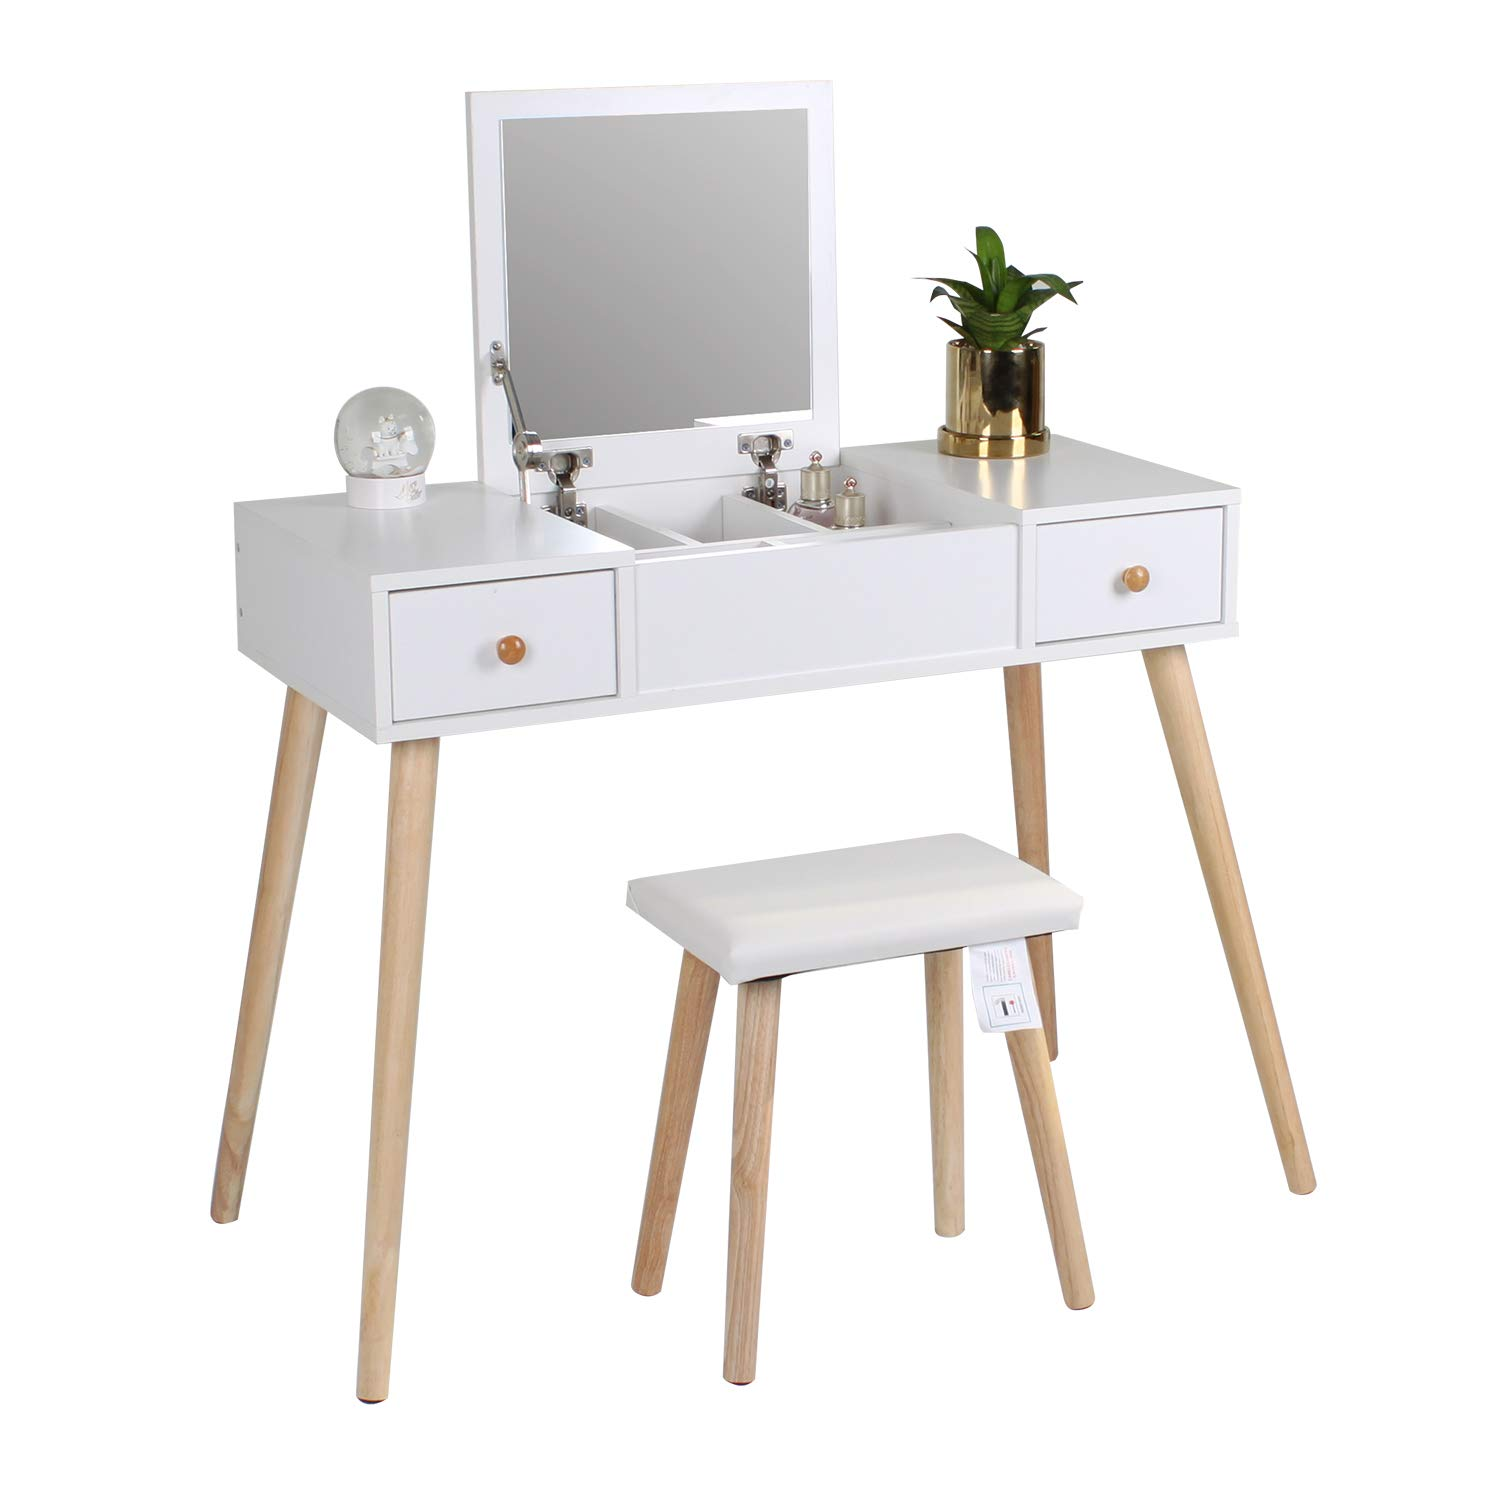 Awe Inspiring Jeffordoutlet Girls White Dressing Table Set Wooden Make Up Table With Flip Top Mirror Pu Leather Stool Bedroom Furniture Ncnpc Chair Design For Home Ncnpcorg